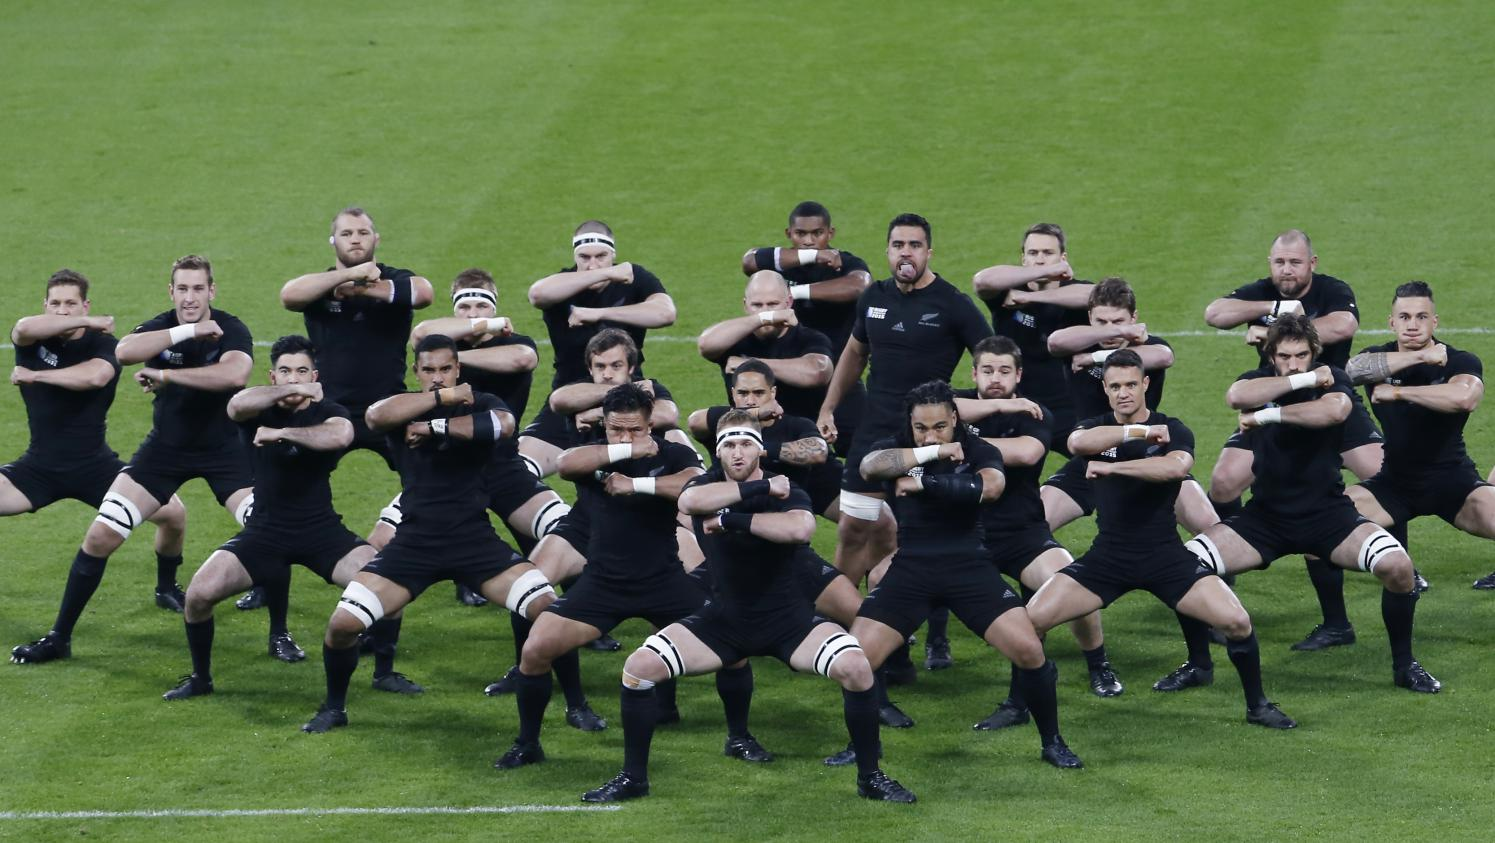 Mondial de rugby comment r ussir le haka des all blacks en sept gifs - Coupe du monde rugby en france ...